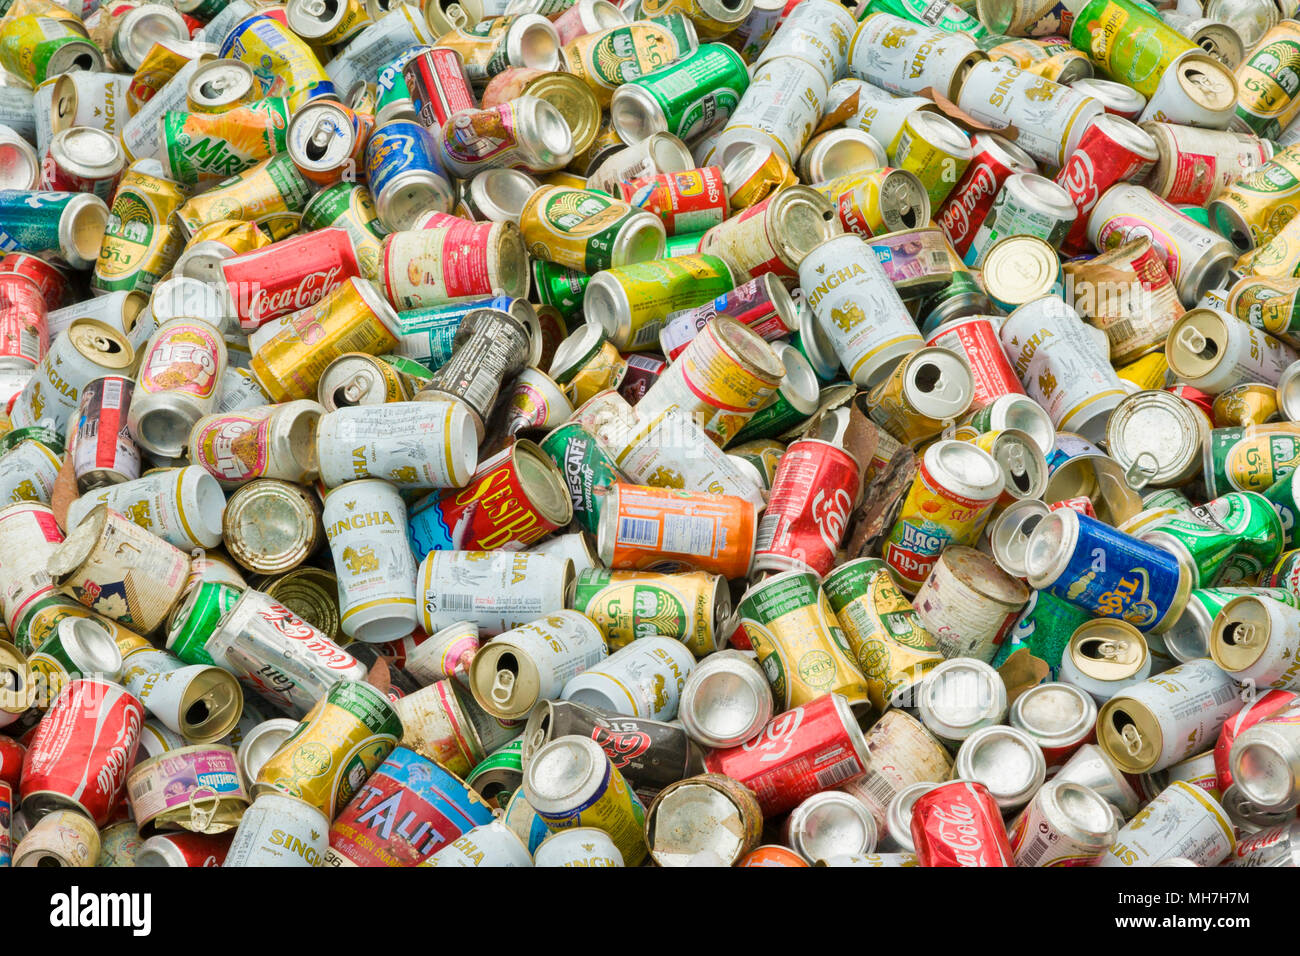 Aluminium cans for recycling, Thailand - Stock Image